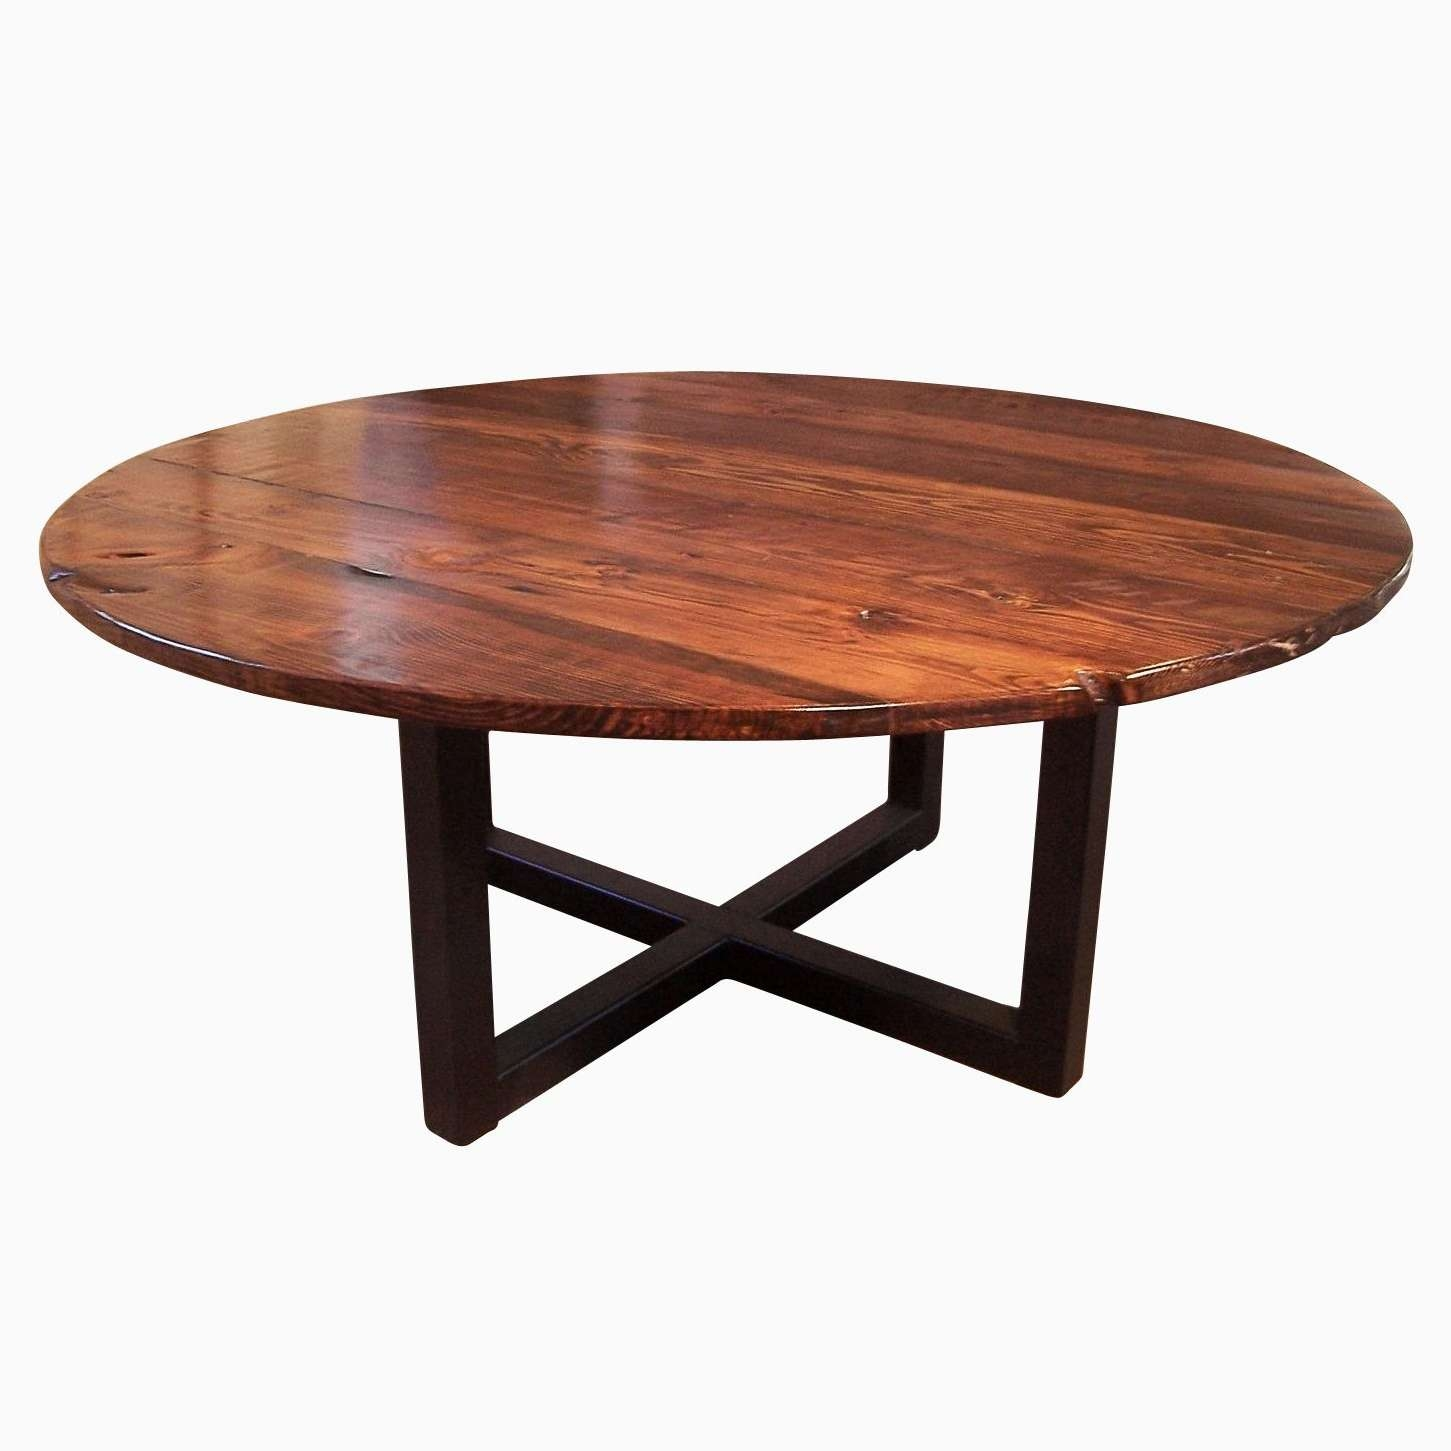 Buy A Hand Crafted Large Round Coffee Table With Industrial Metal Throughout Most Recently Released Industrial Round Coffee Tables (View 2 of 20)